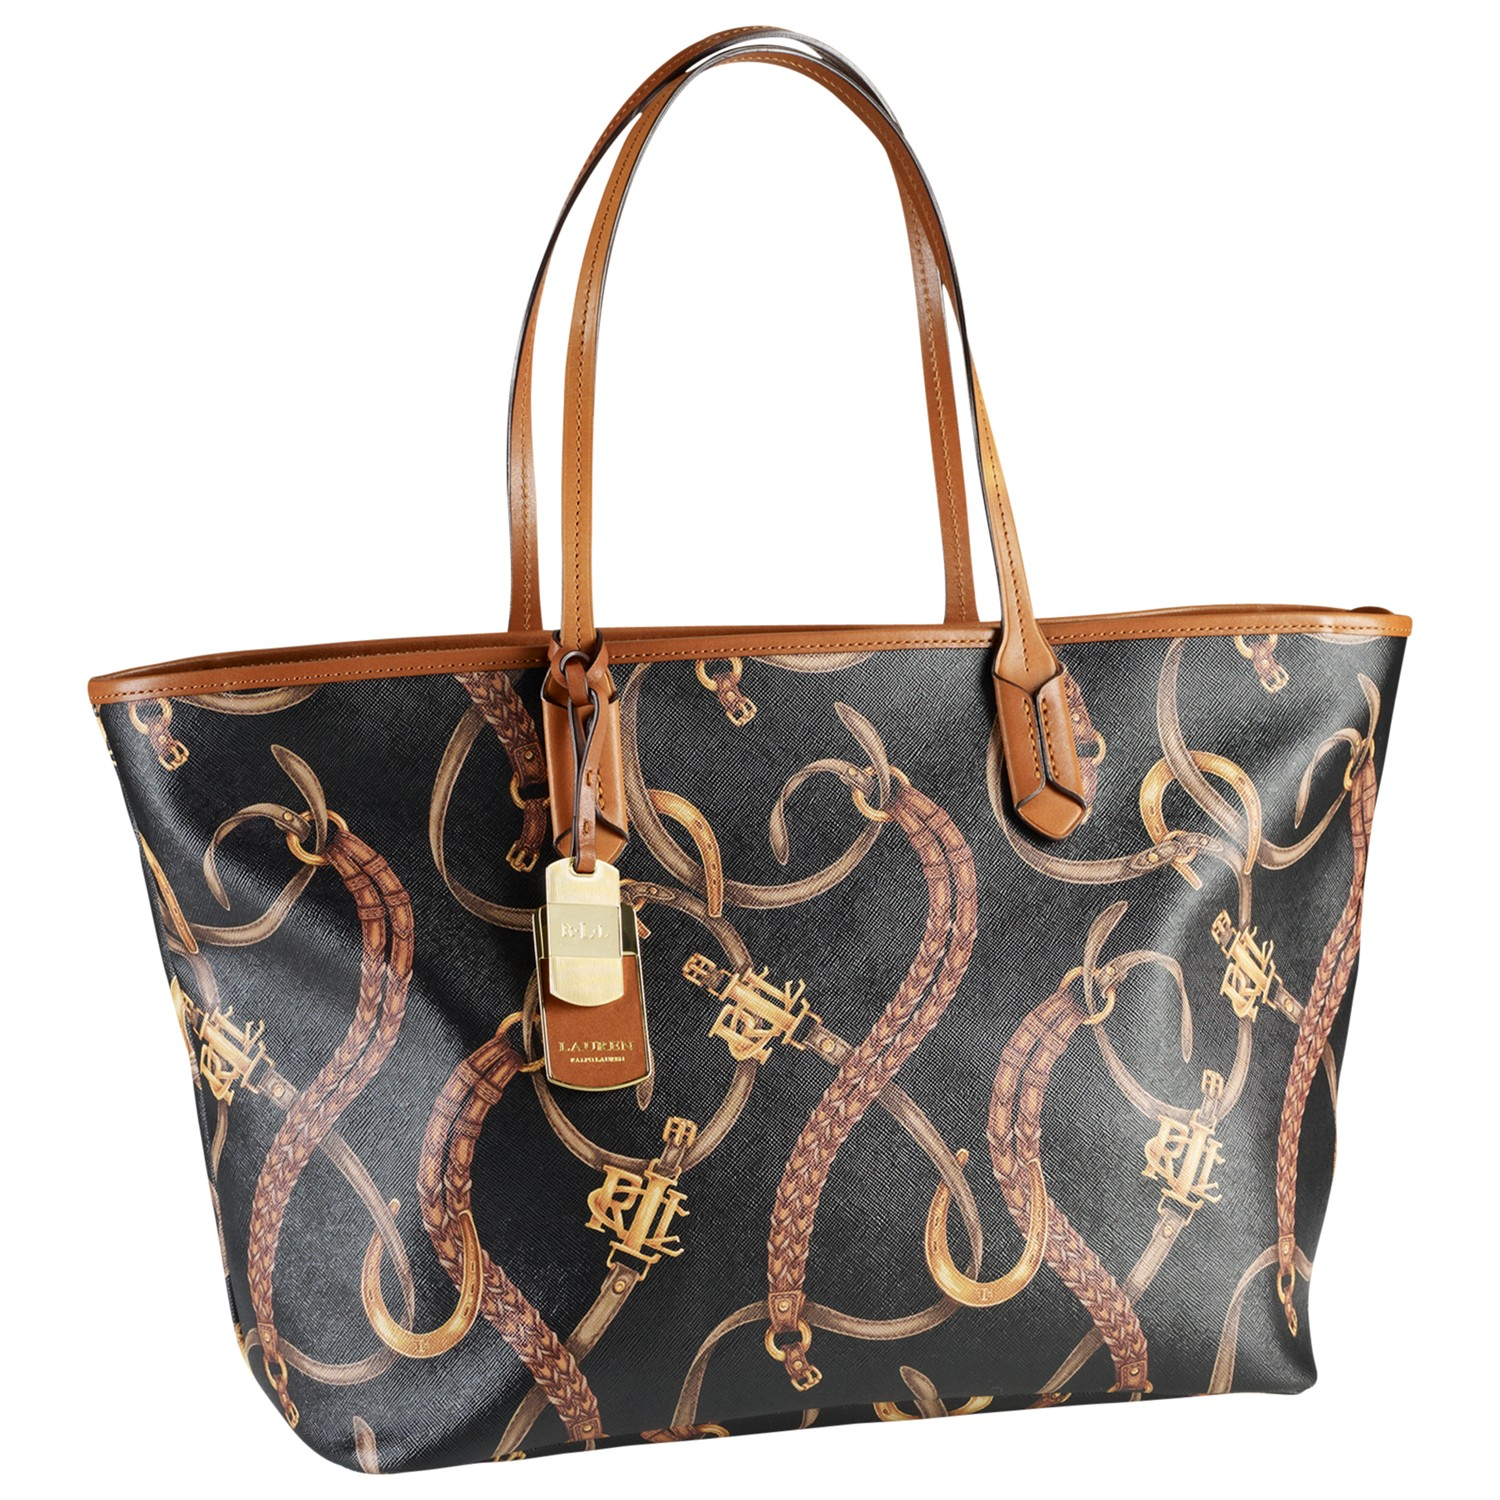 383cb1befcc Lauren by Ralph Lauren Caldwell Classic Tote Bag - Lyst